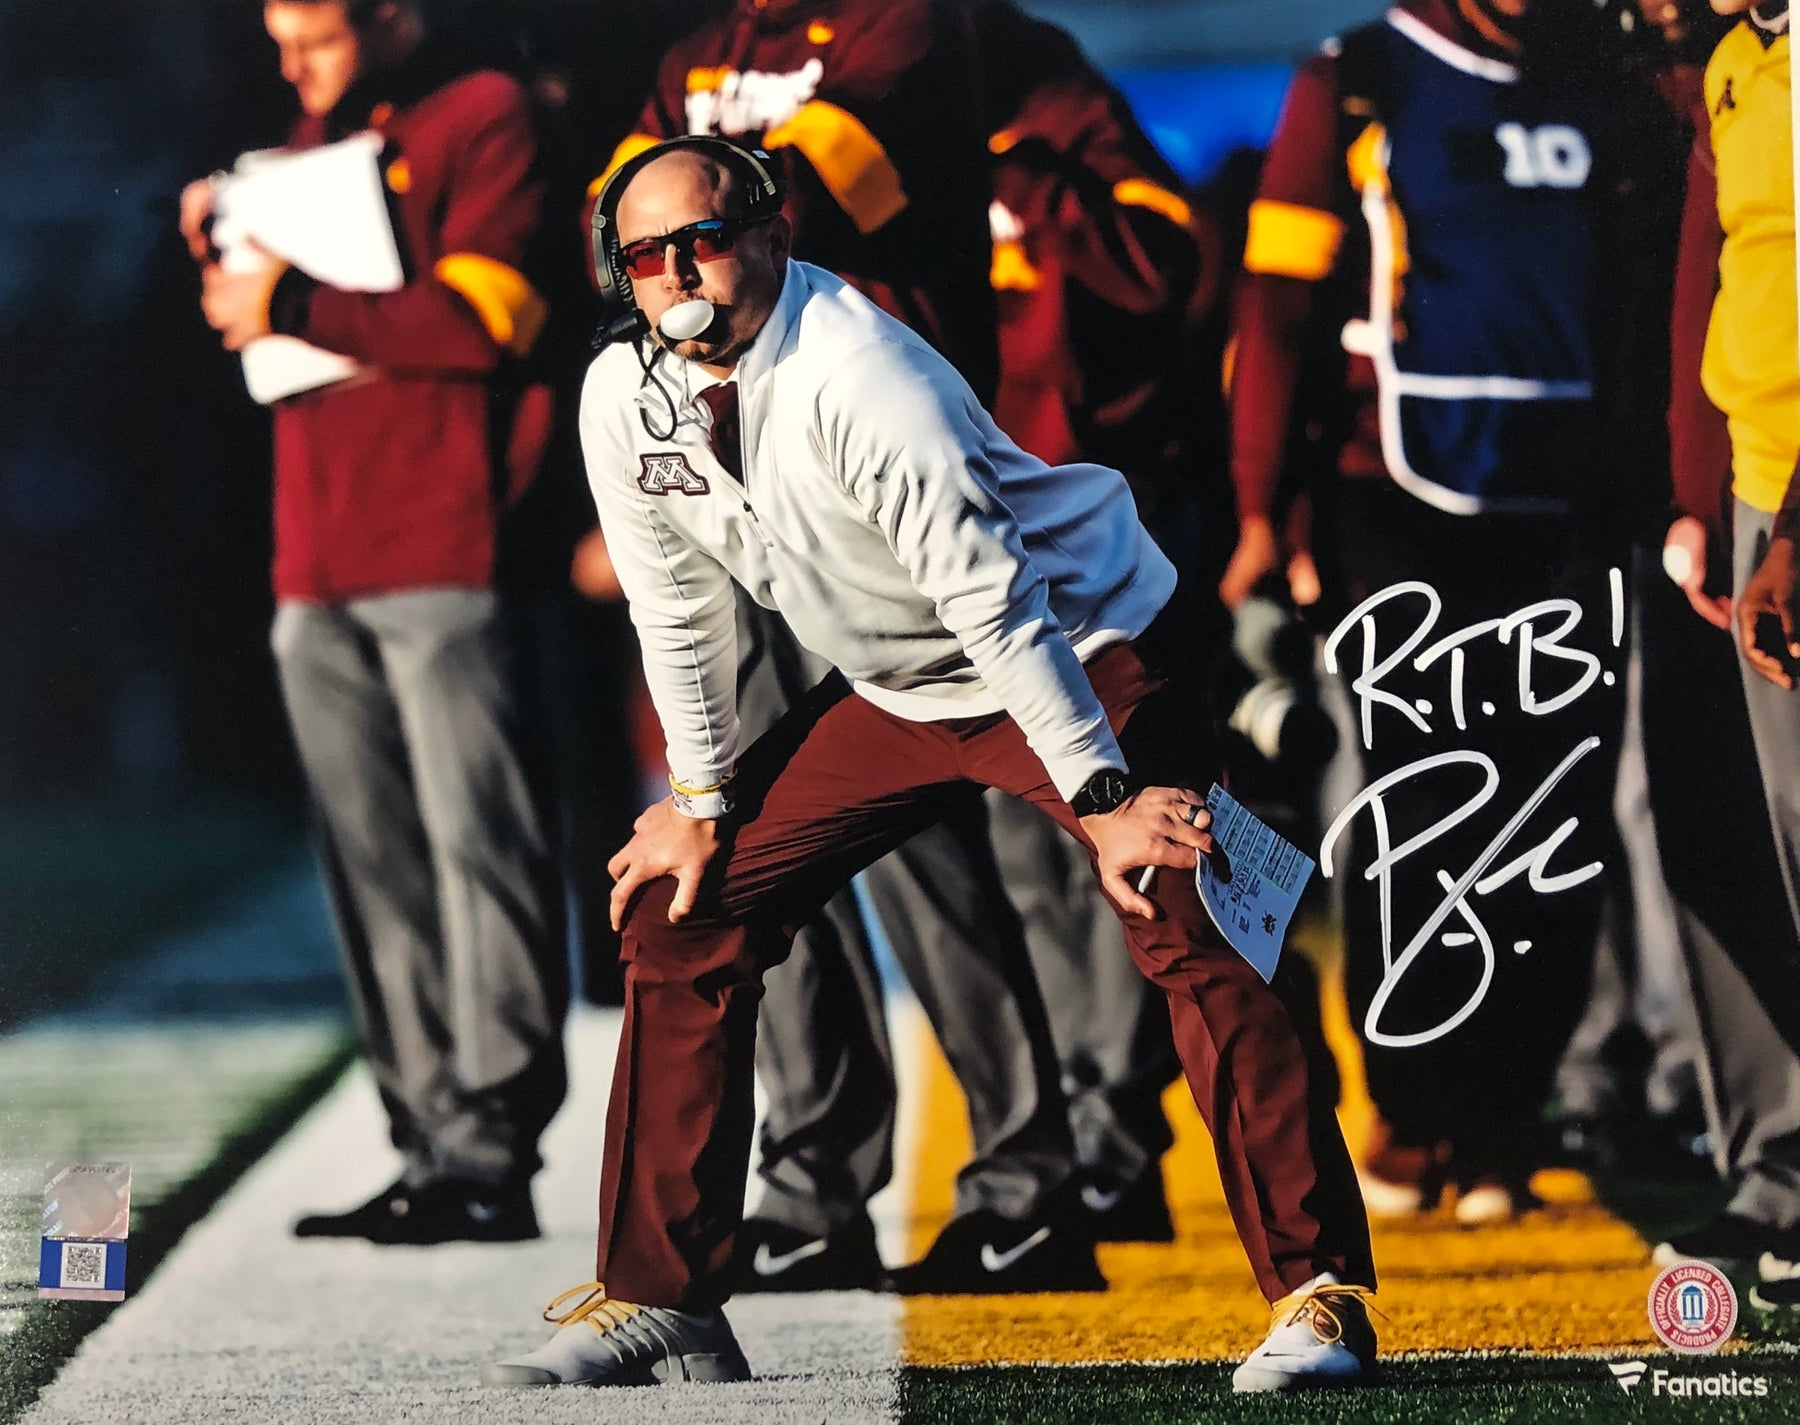 PJ Fleck Signed Sidelines 11x14 Photo with RTB